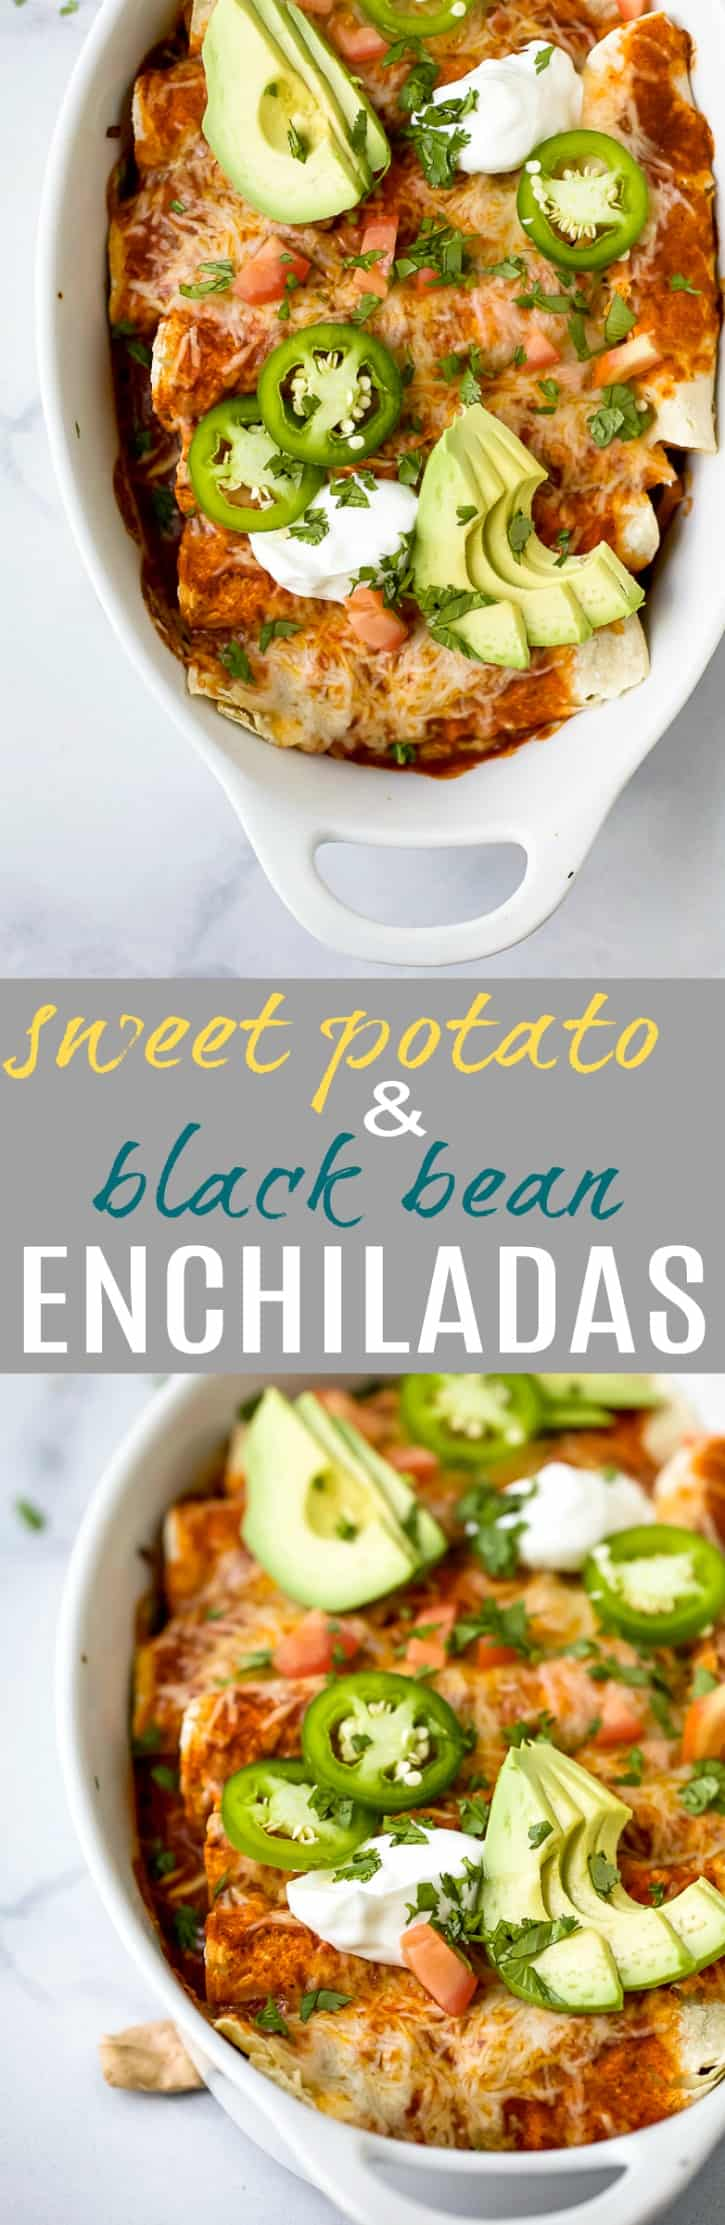 Gluten Free Sweet Potato Black Bean Enchiladas covered in a smoky red chili sauce and gooey cheese. Simple ingredients and lots of flavor make these black bean enchiladas a must try dinner recipe!